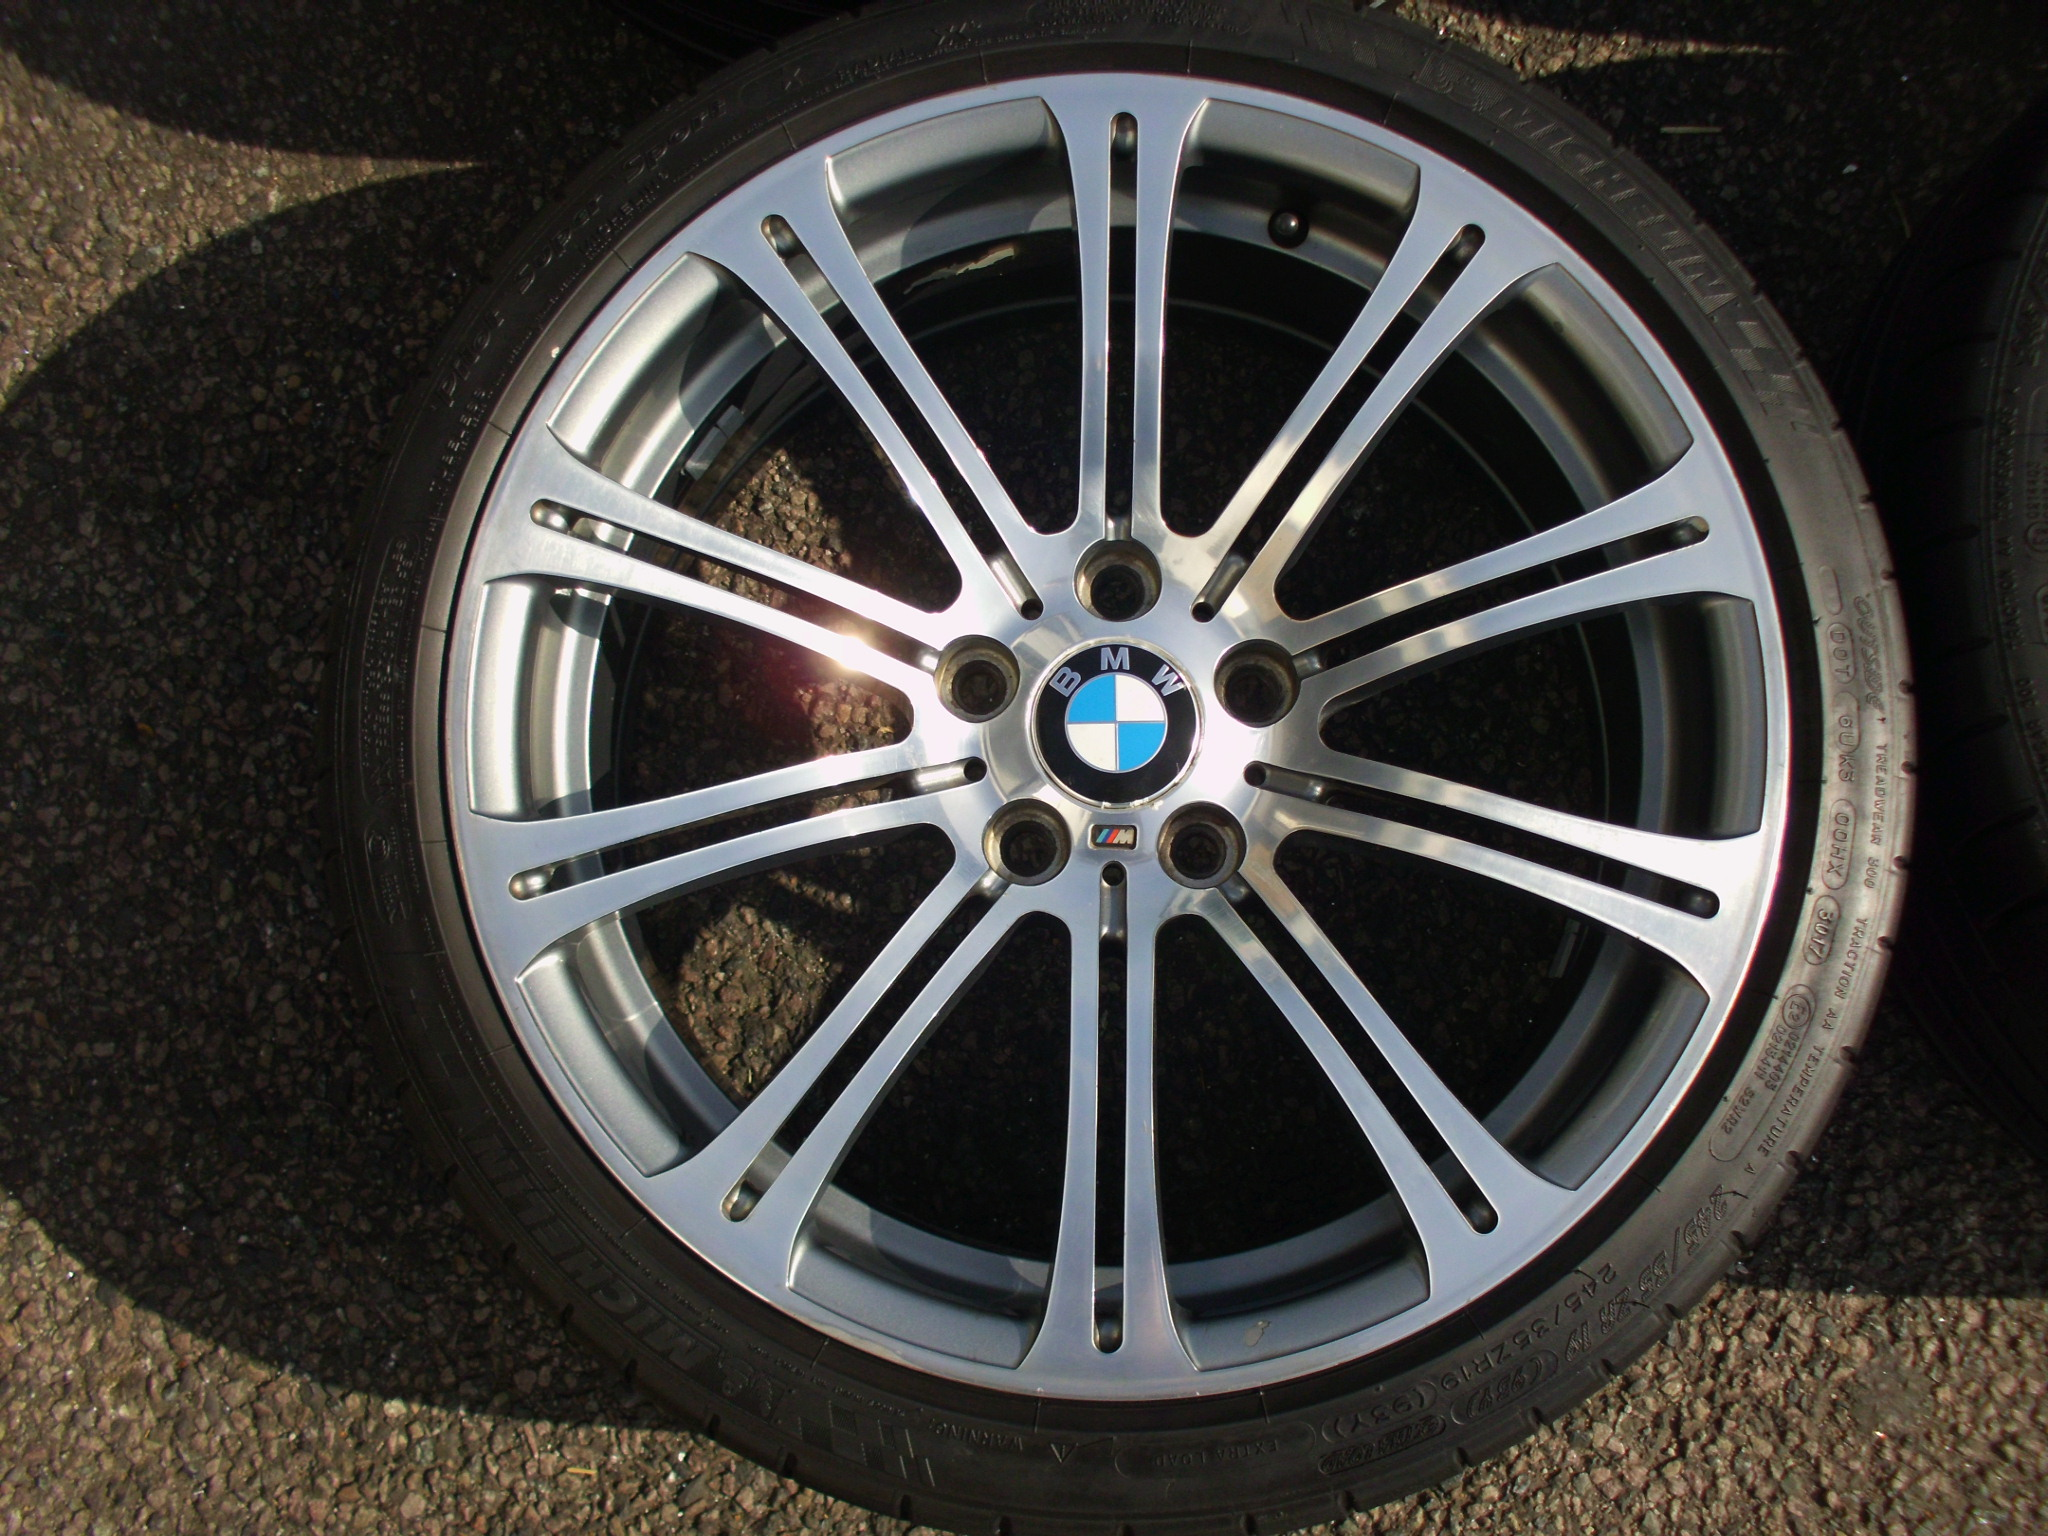 "USED 19"" GENUINE BMW STYLE 220 E92 M3 POLISHED ALLOY WHEELS, WIDE REAR, VG ORIGINAL CONDITION INC VG MICHELIN PILOT SUPER SPORT TYRES"